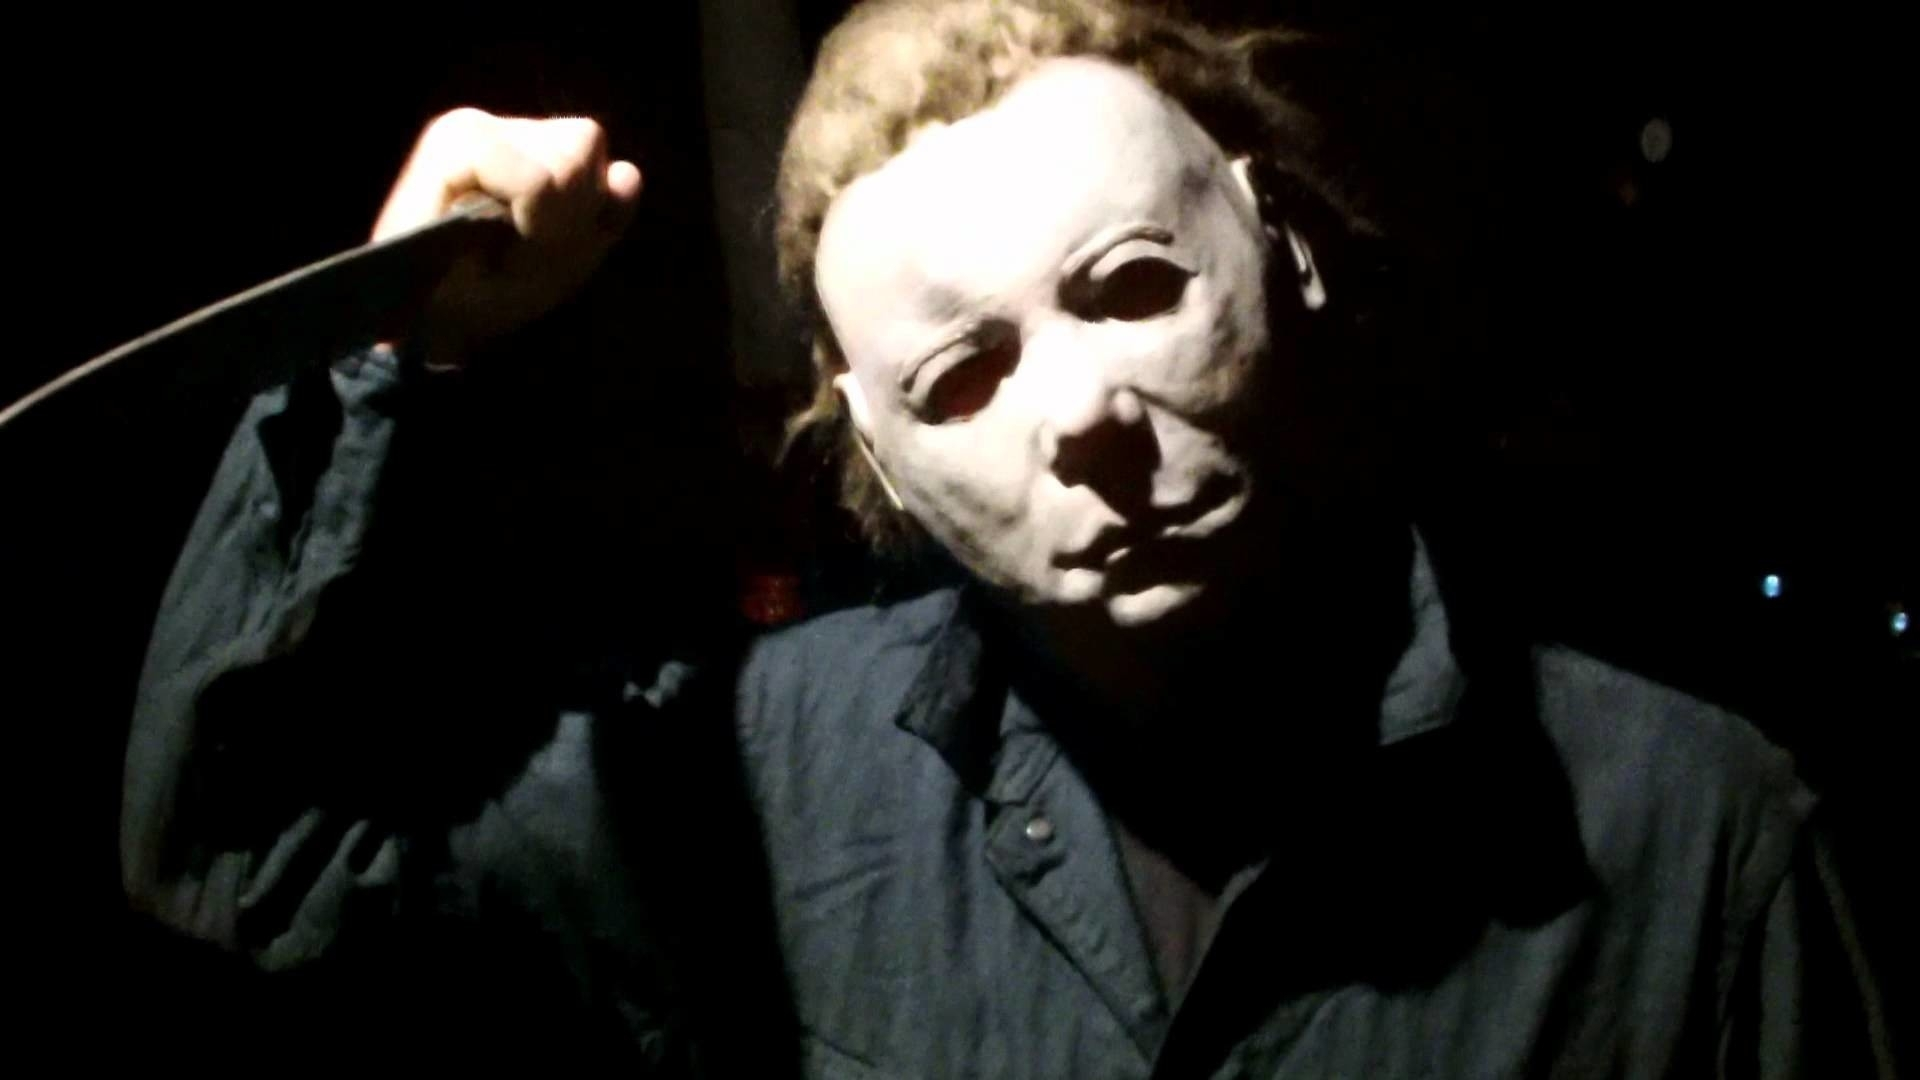 michael myers live wallpaper (61+ images)